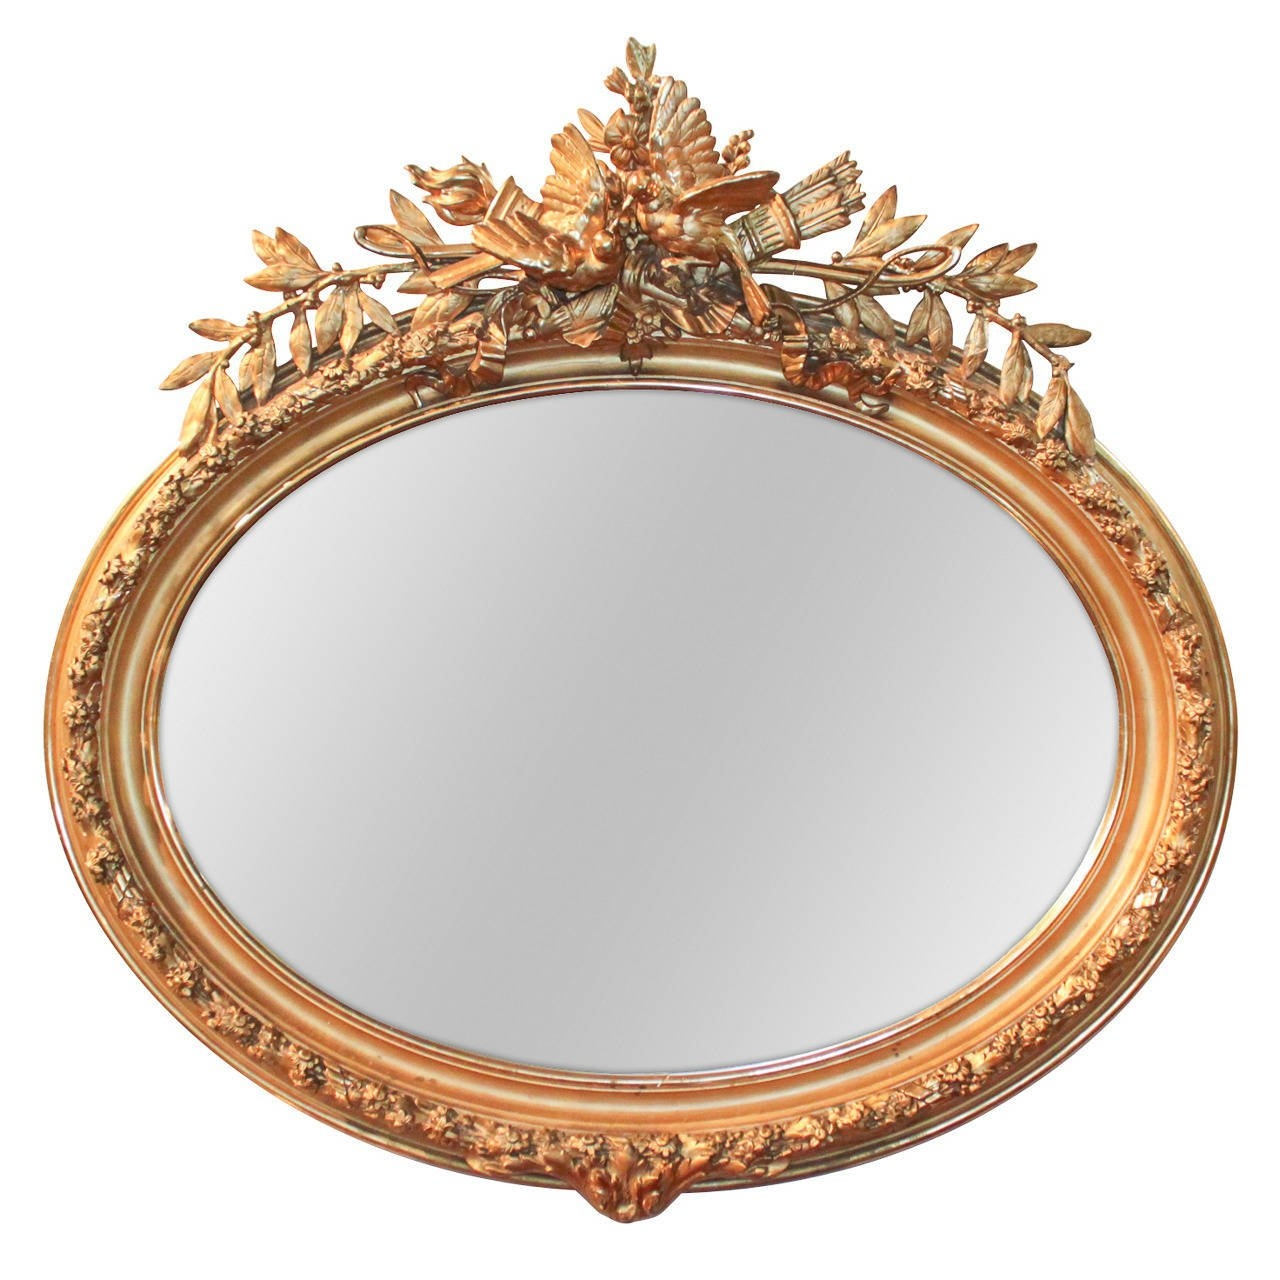 19th Century French Louis Xvi Oval Gilt Mirror For Sale At 1stdibs Within French Oval Mirror (View 2 of 15)